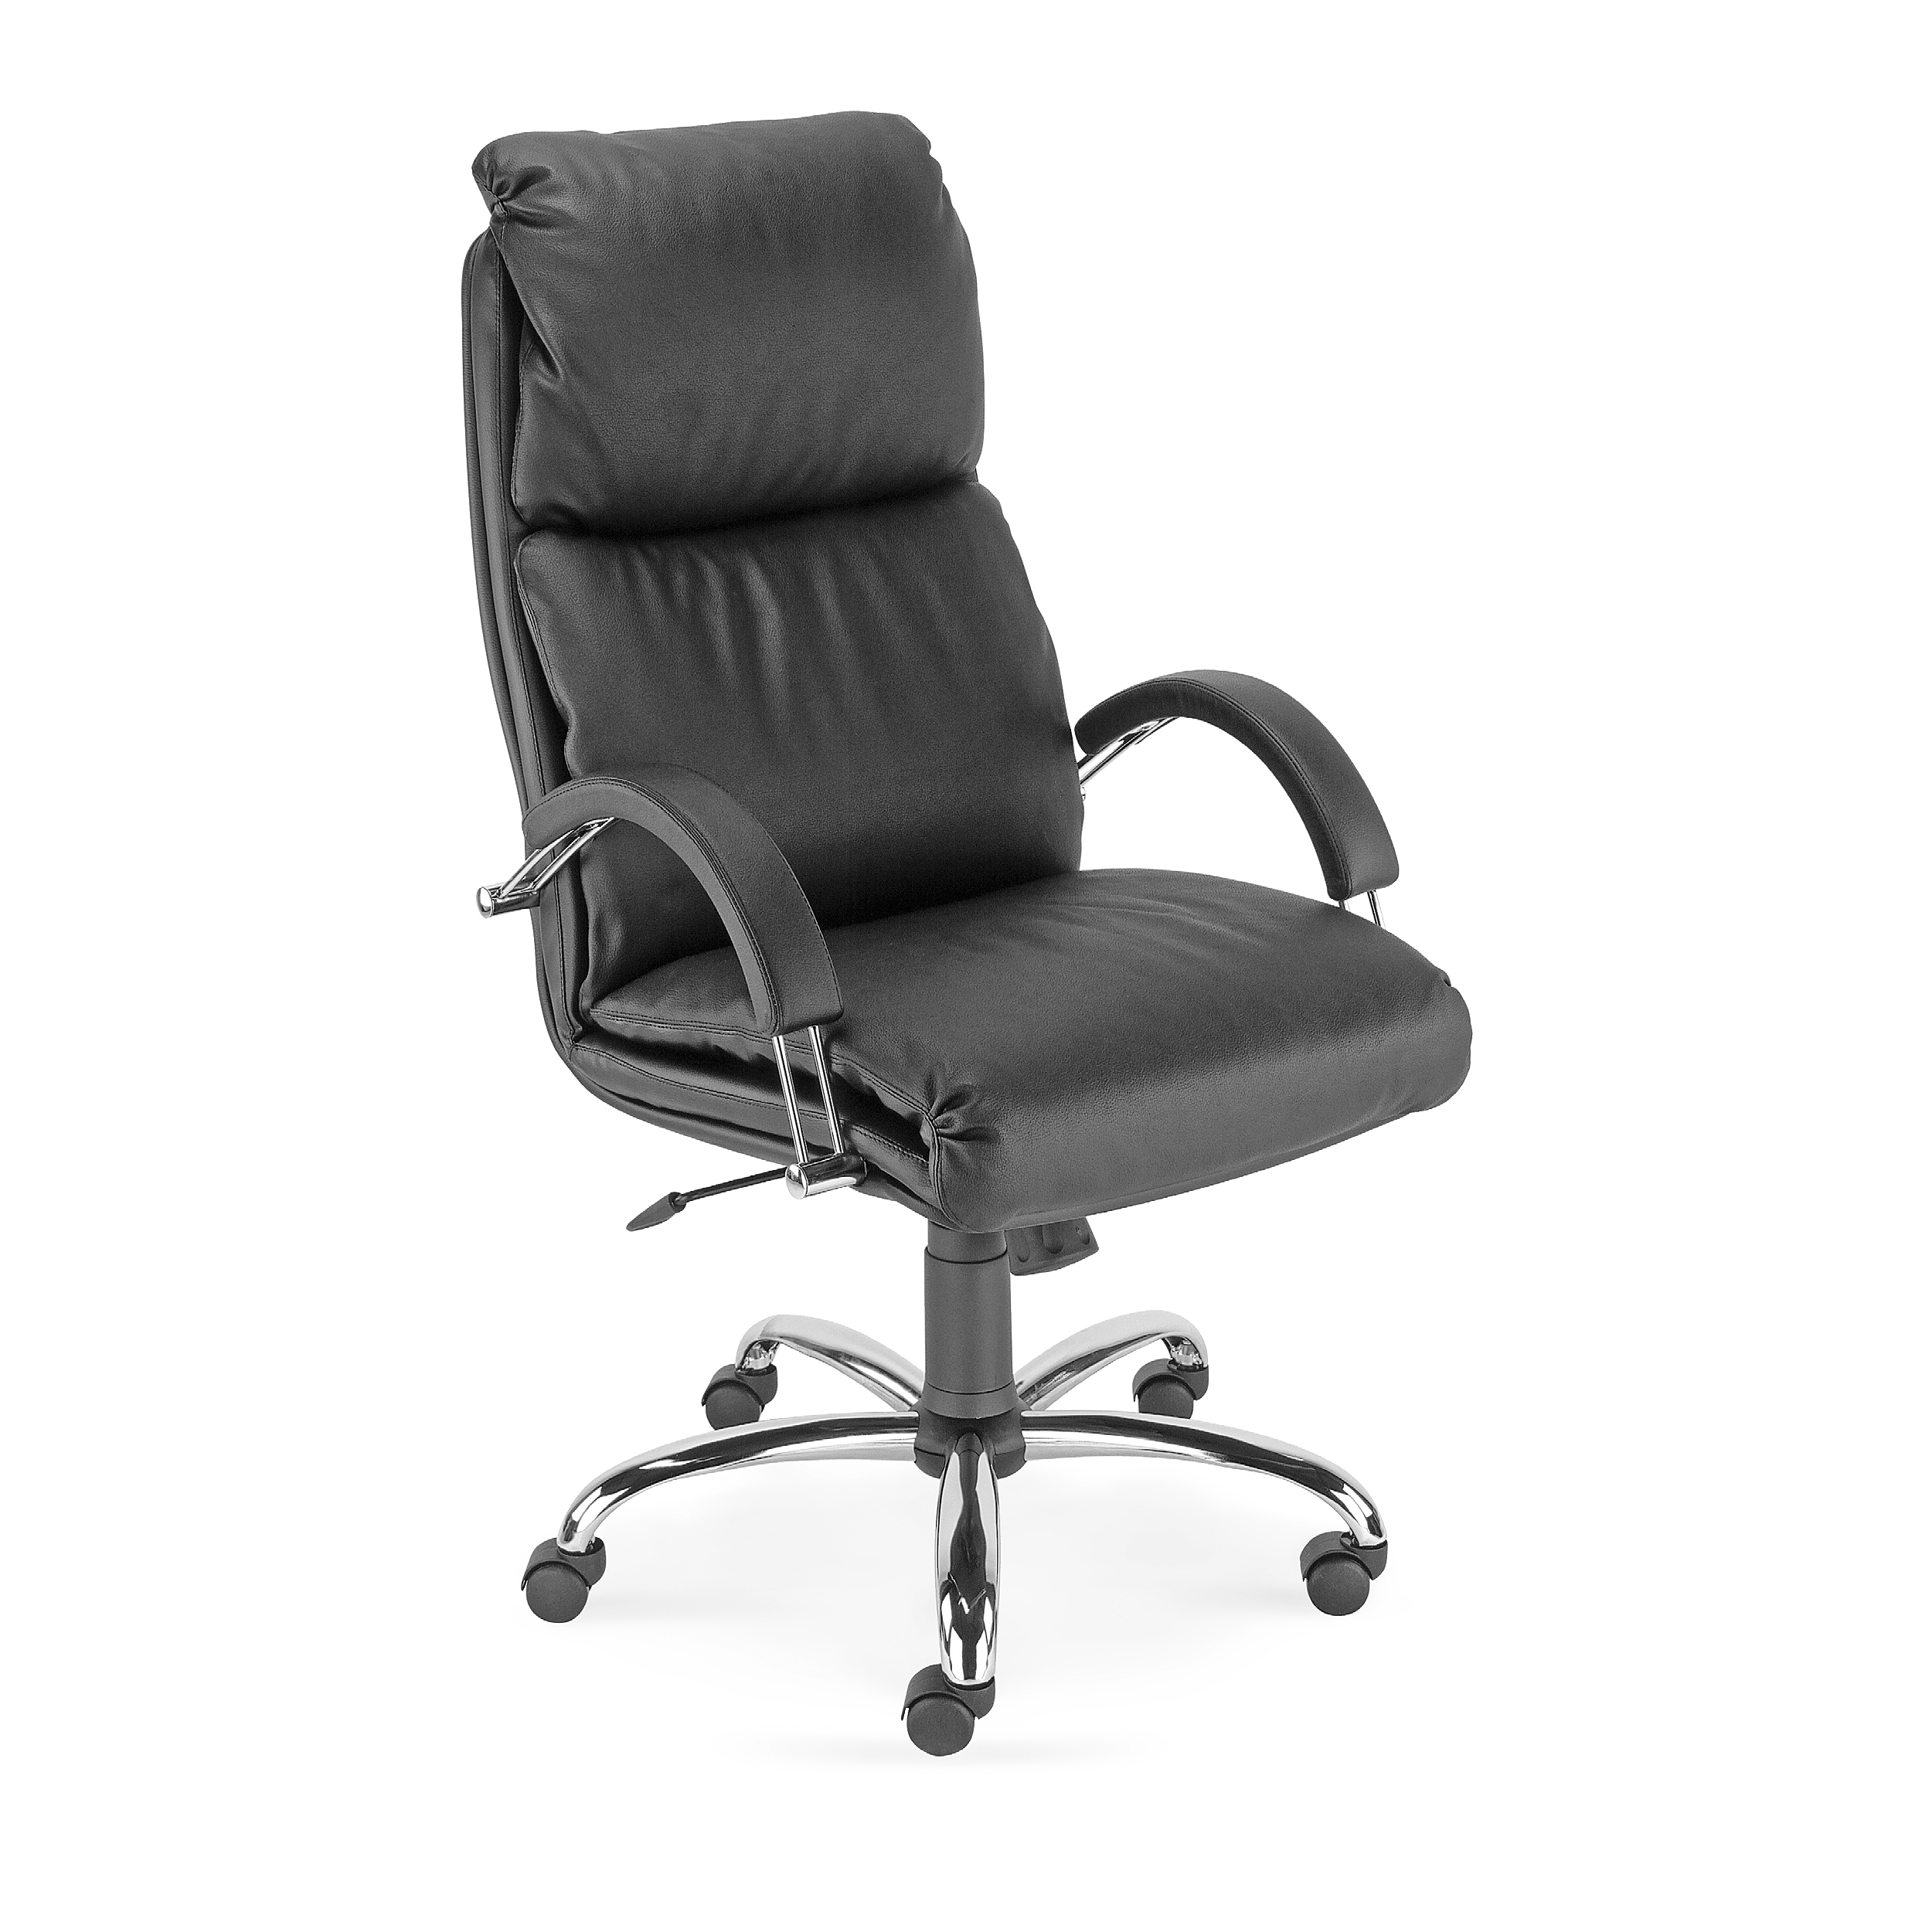 Nadir chrome base high back managerial chair (Split leather front)